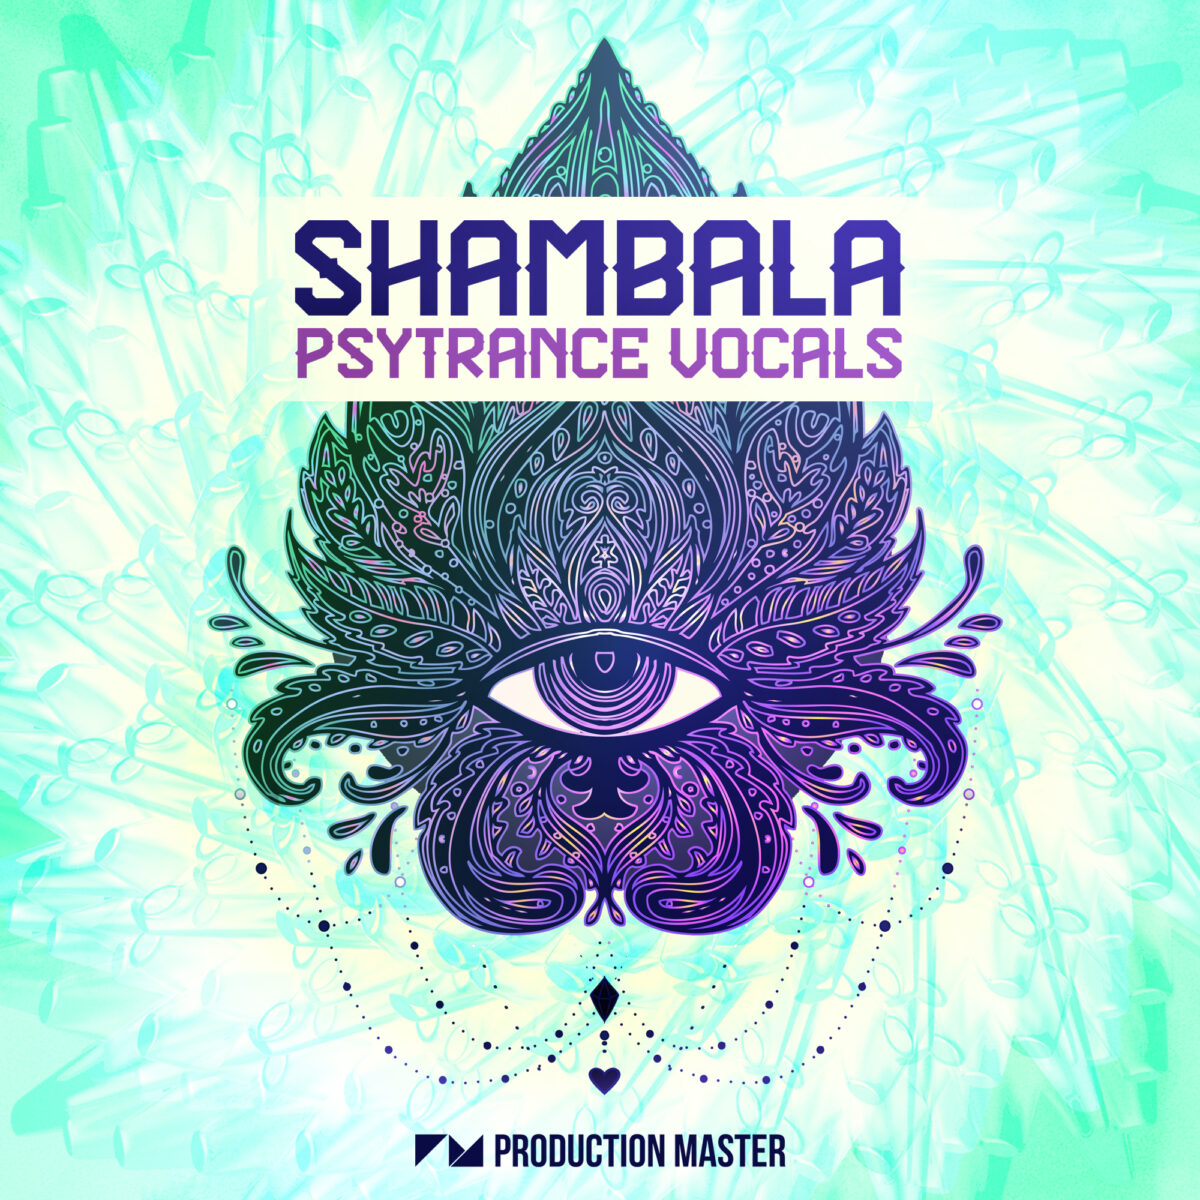 Production Master | Shambala - Psytrance Vocals